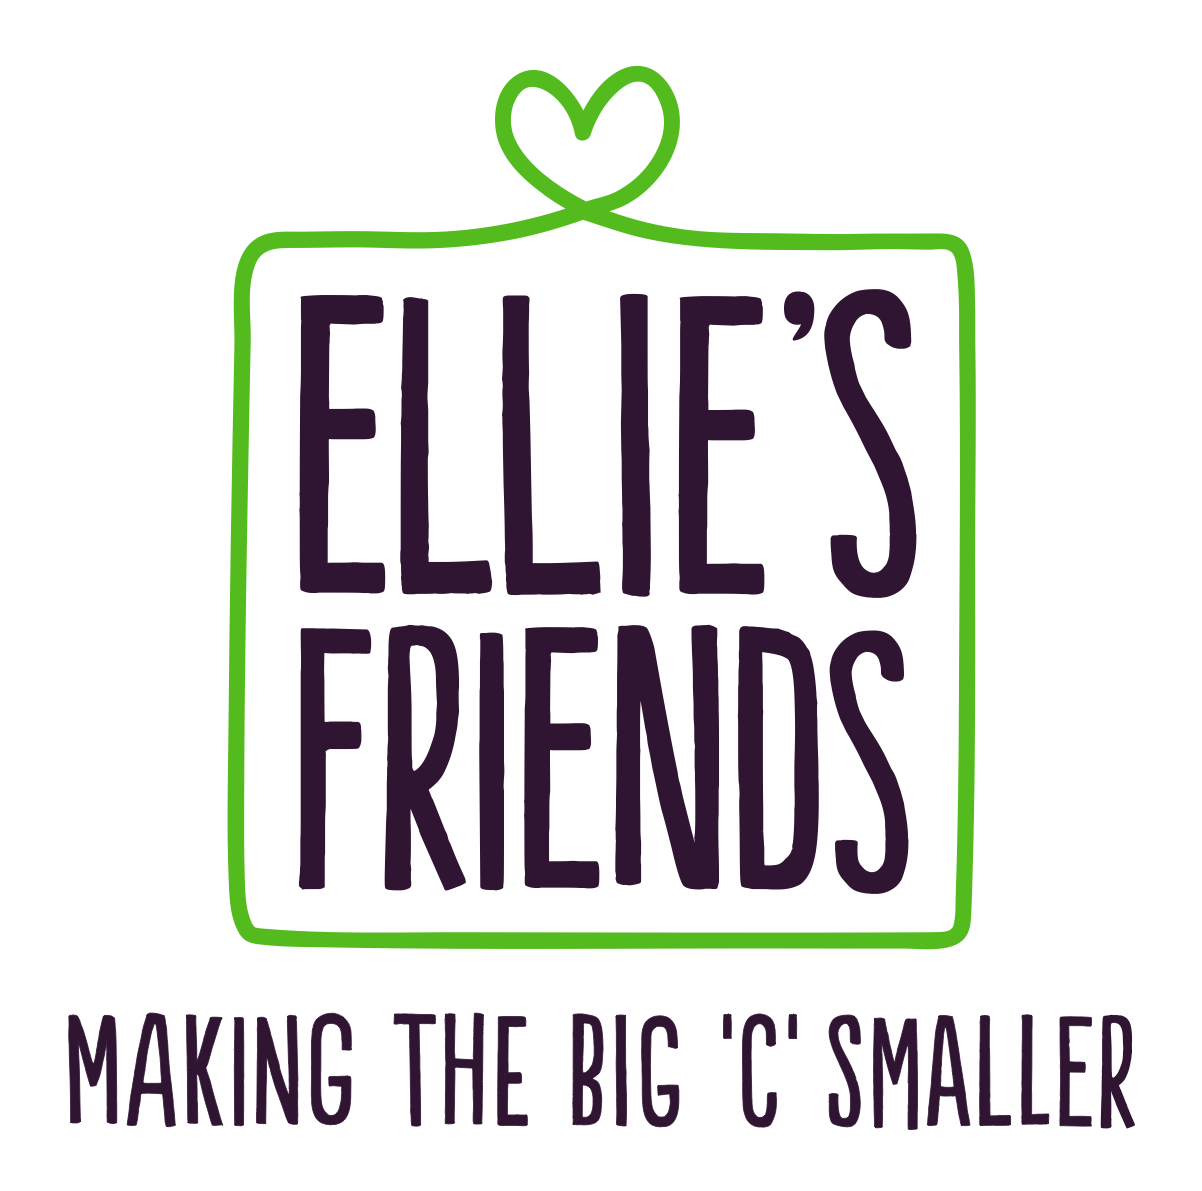 Ellie's Friends - Making the big C smaller